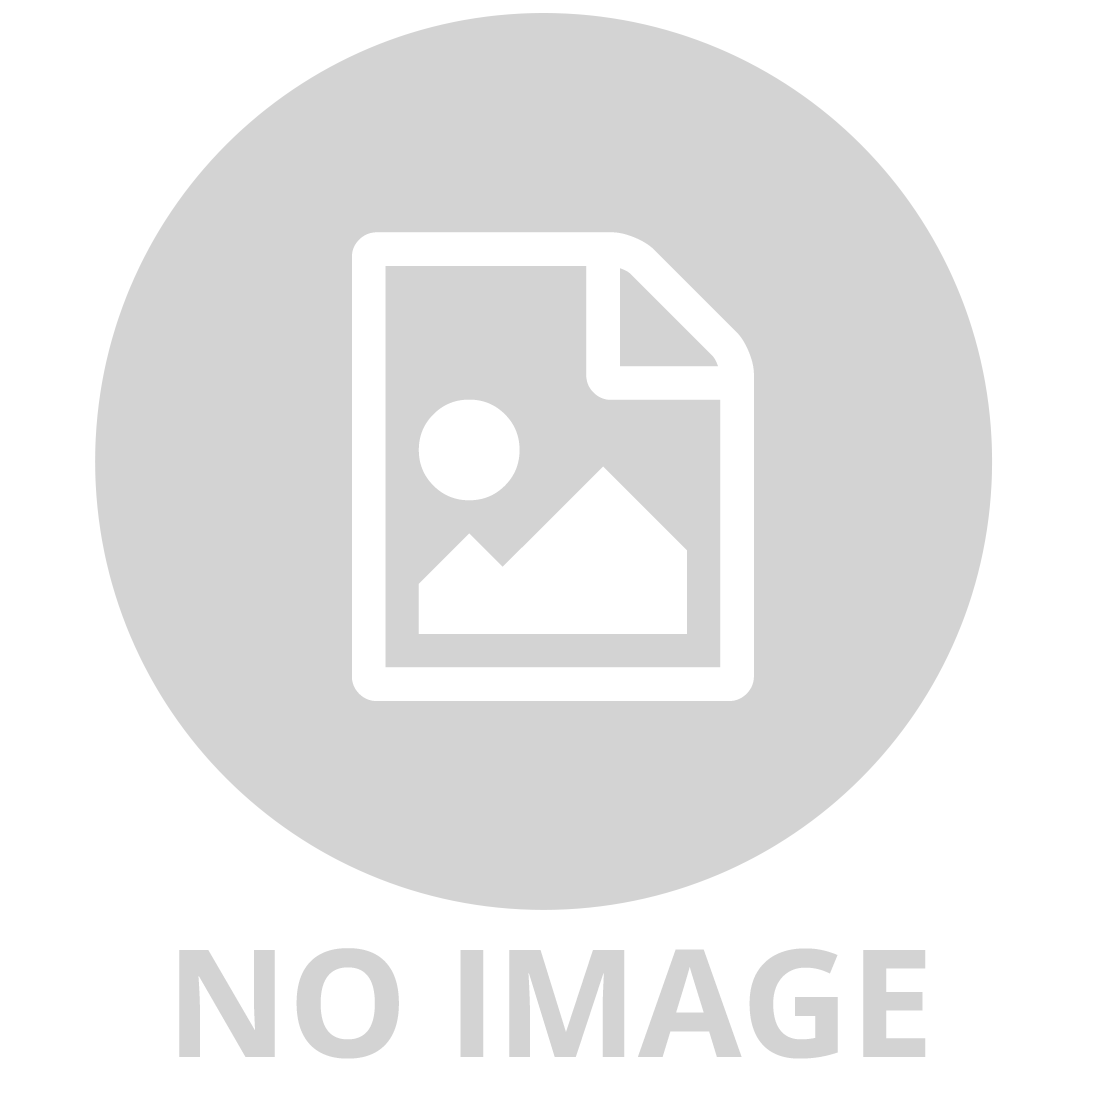 Willow 4LT Beaded Pendant Blk MG2624